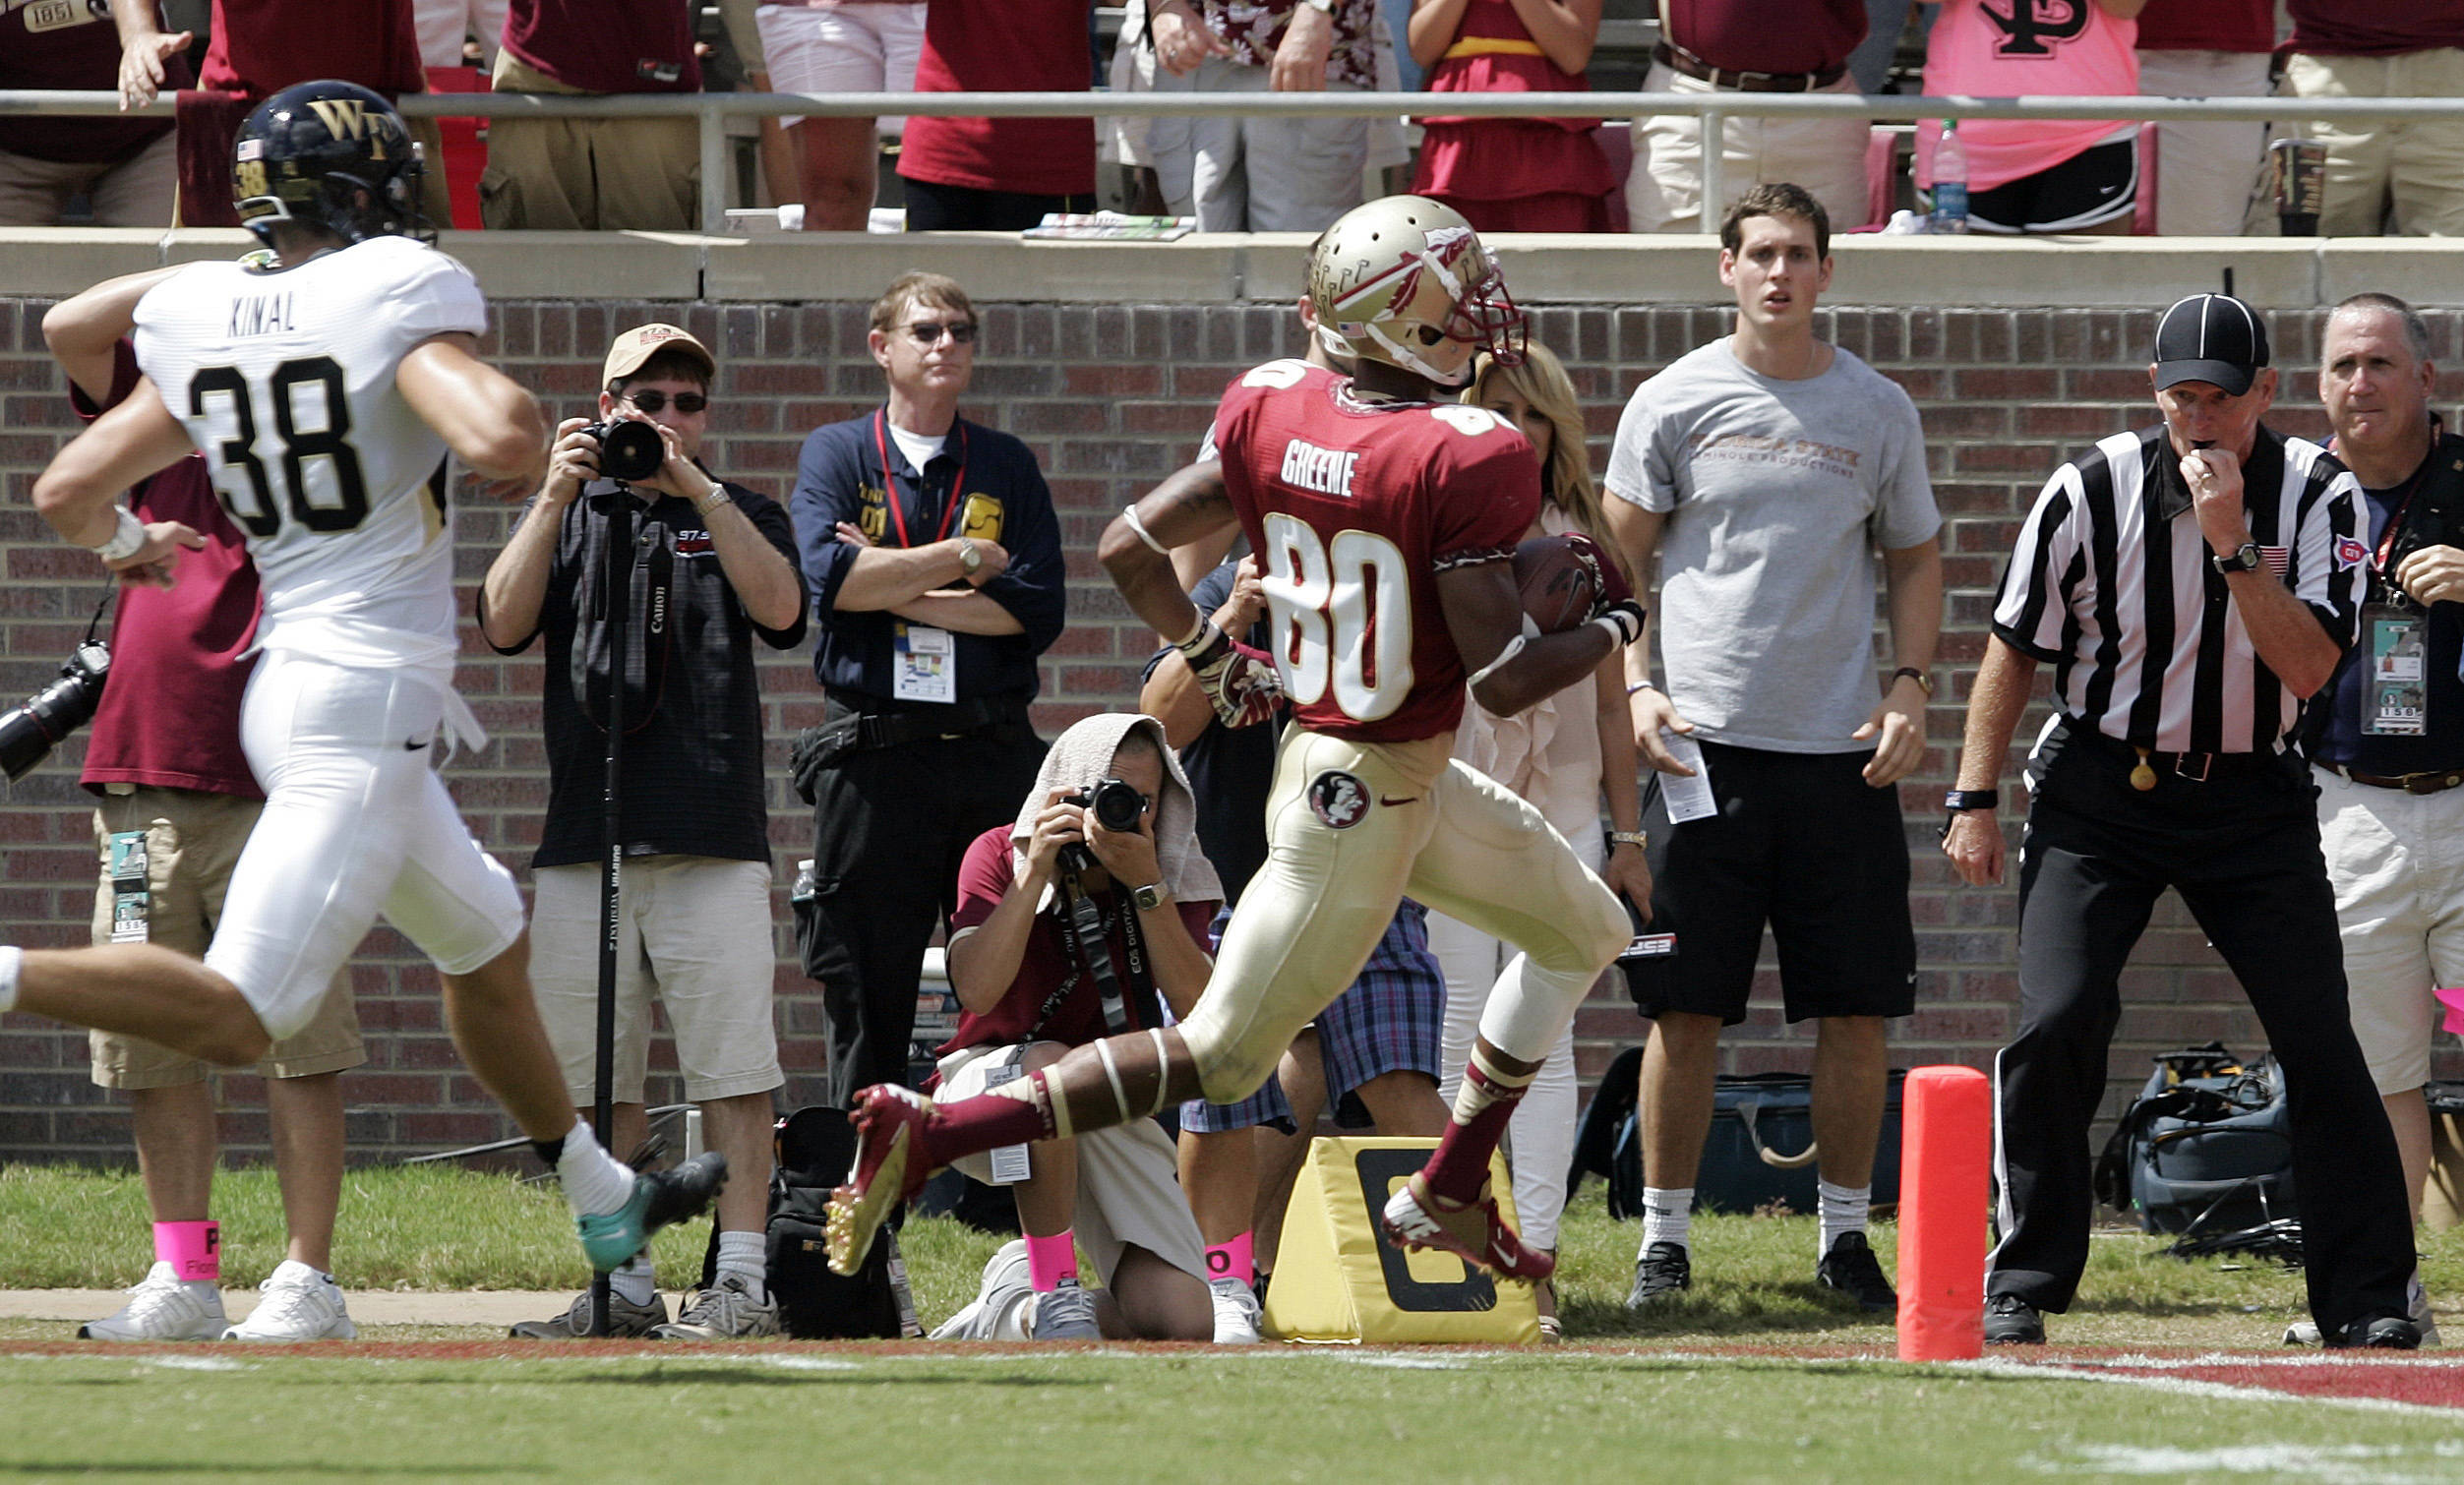 Florida State's Rashad Greene, right, runs past Wake Forest's Alex Kinal to score on a punt return. (AP Photo/Steve Cannon)